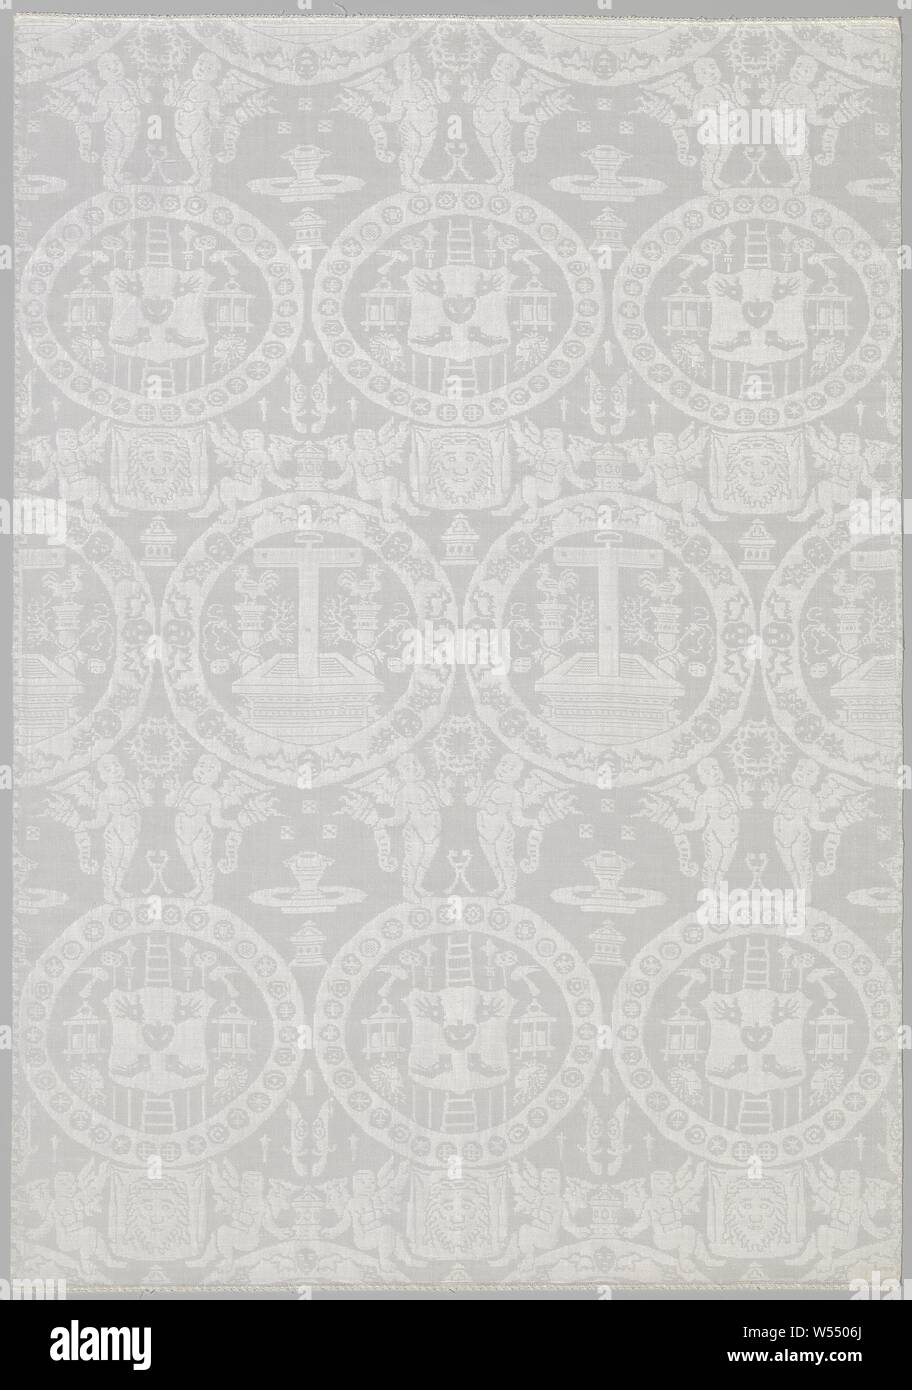 Napkin with Arma Christi, White linen damask napkin with circles with Arma Christi., anonymous, Vlaanderen, c. 1550 - c. 1599, linen (material), damask, h 100.7 cm × w 69.9 cm Stock Photo